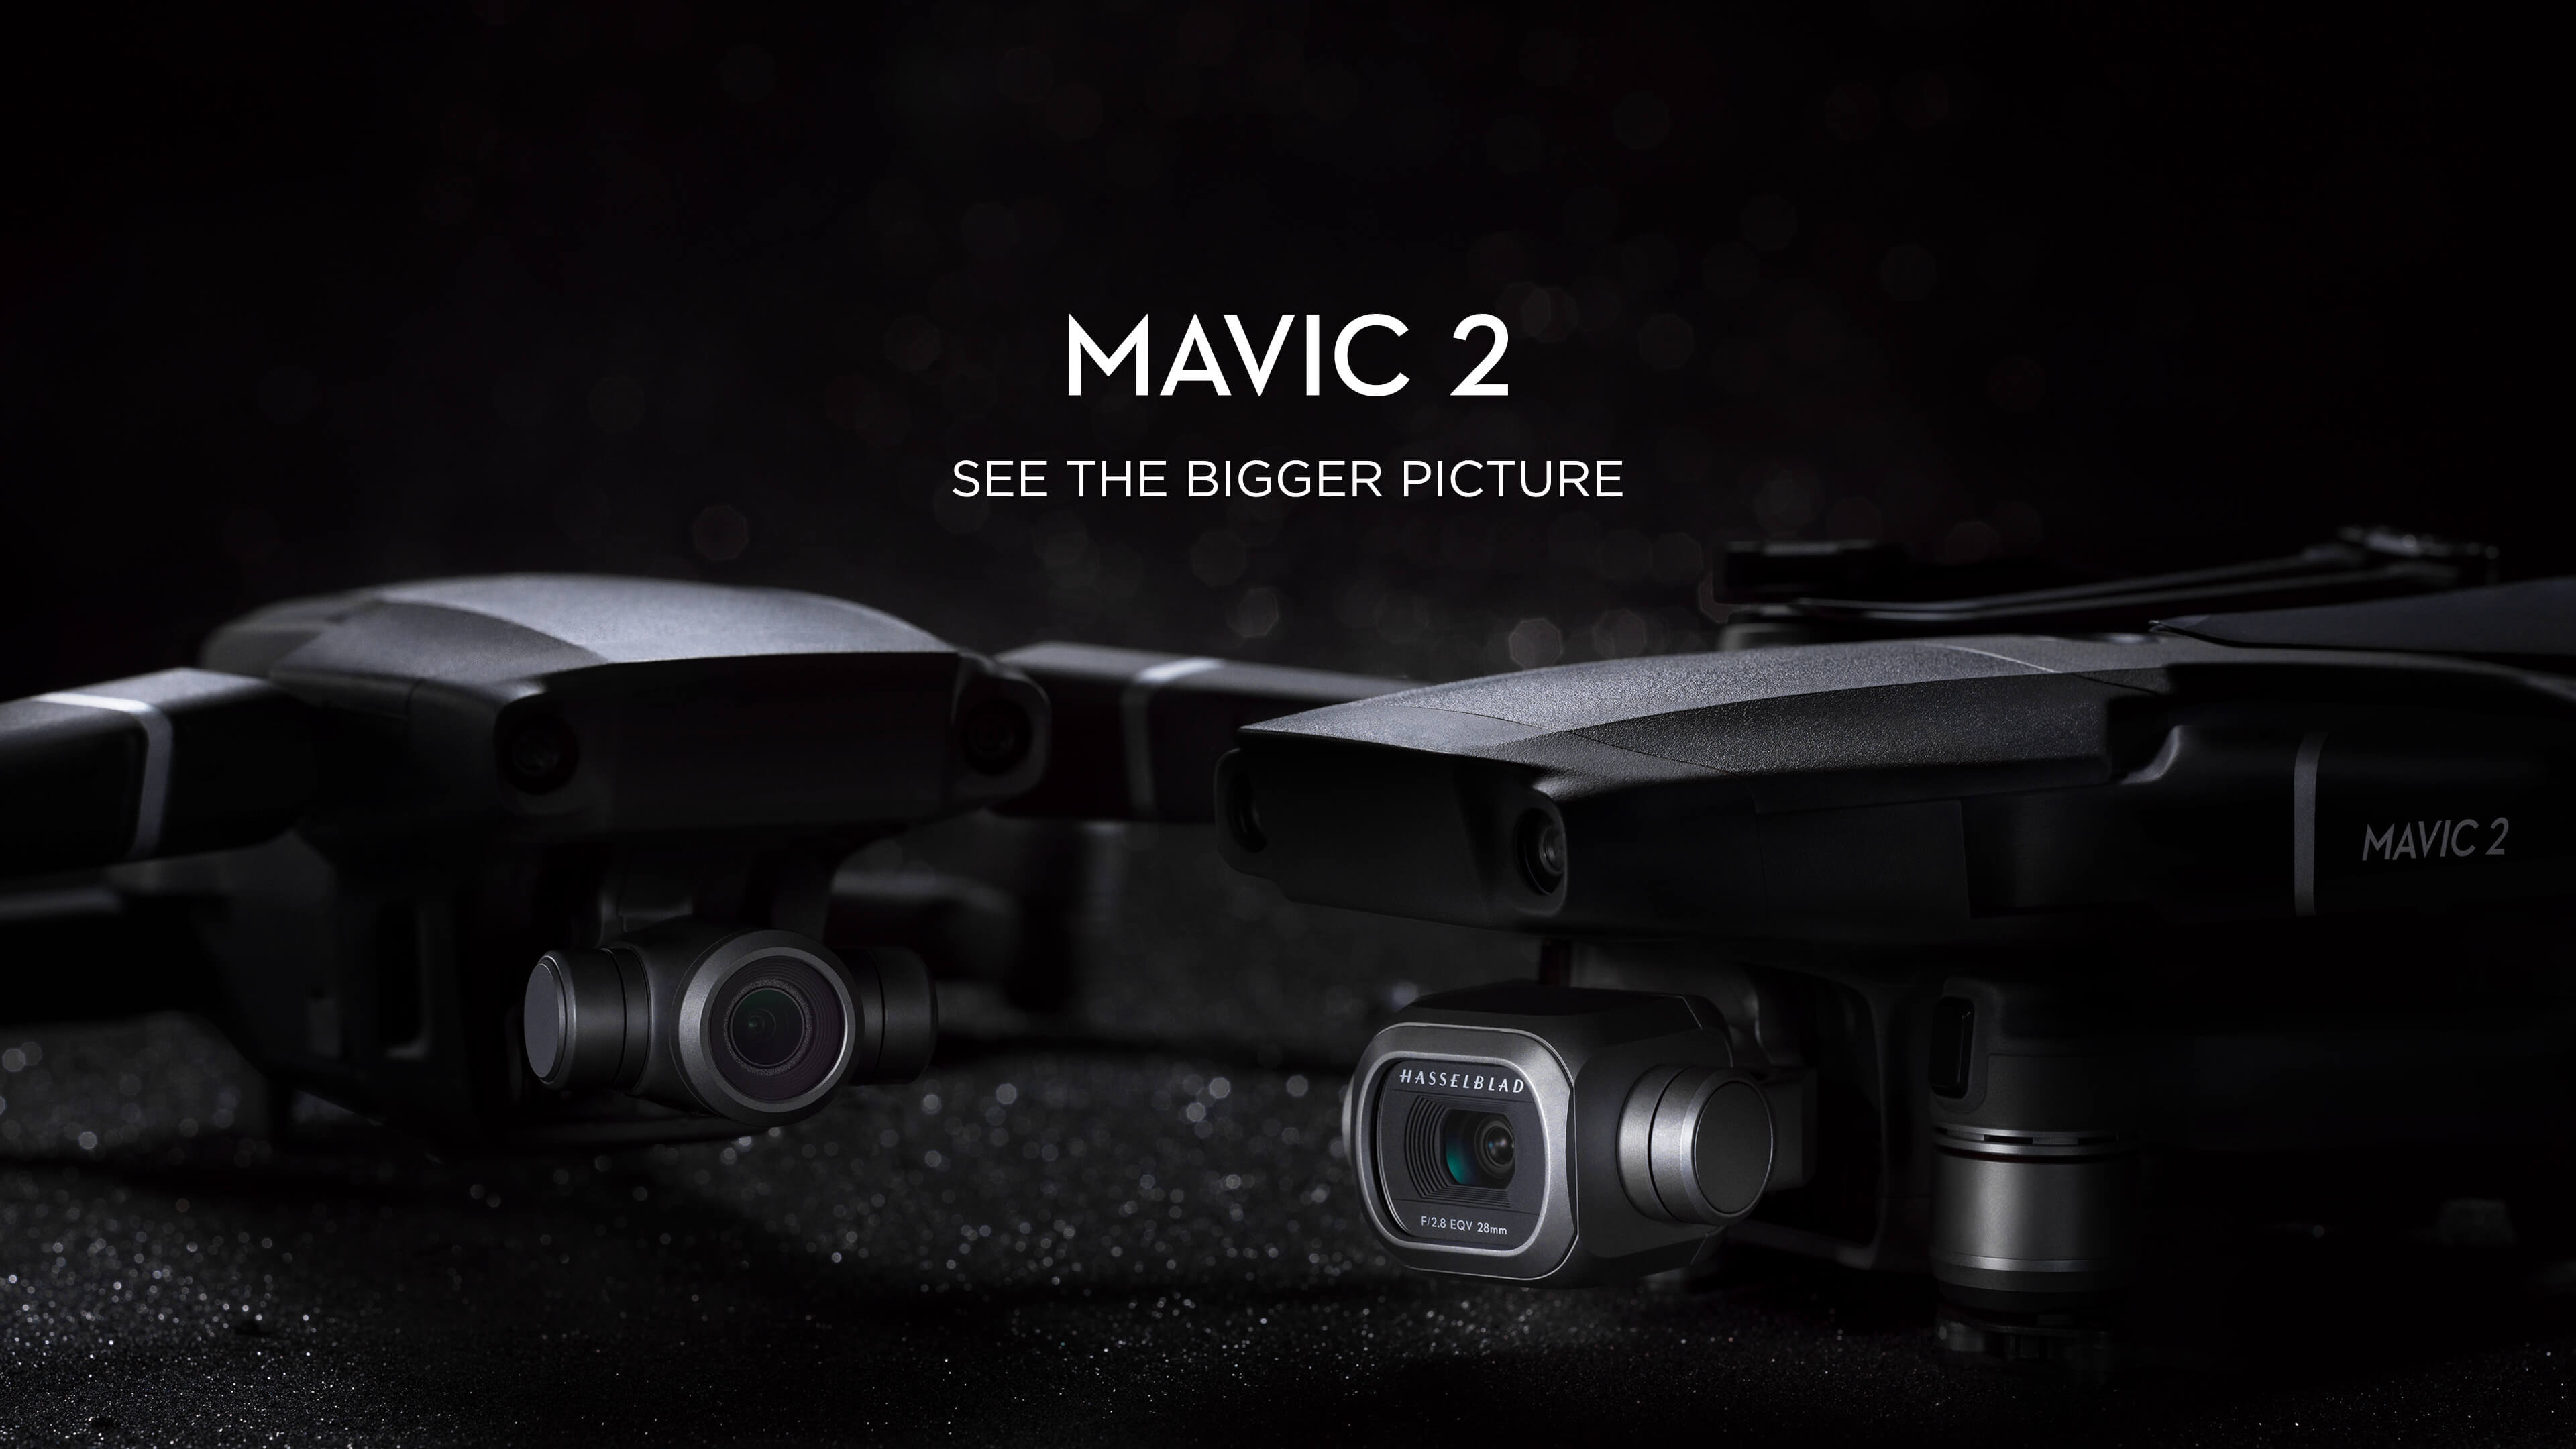 d2d8706058e Mavic 2 vs Mavic Pro: What's New and Should I Upgrade? - DJI Guides